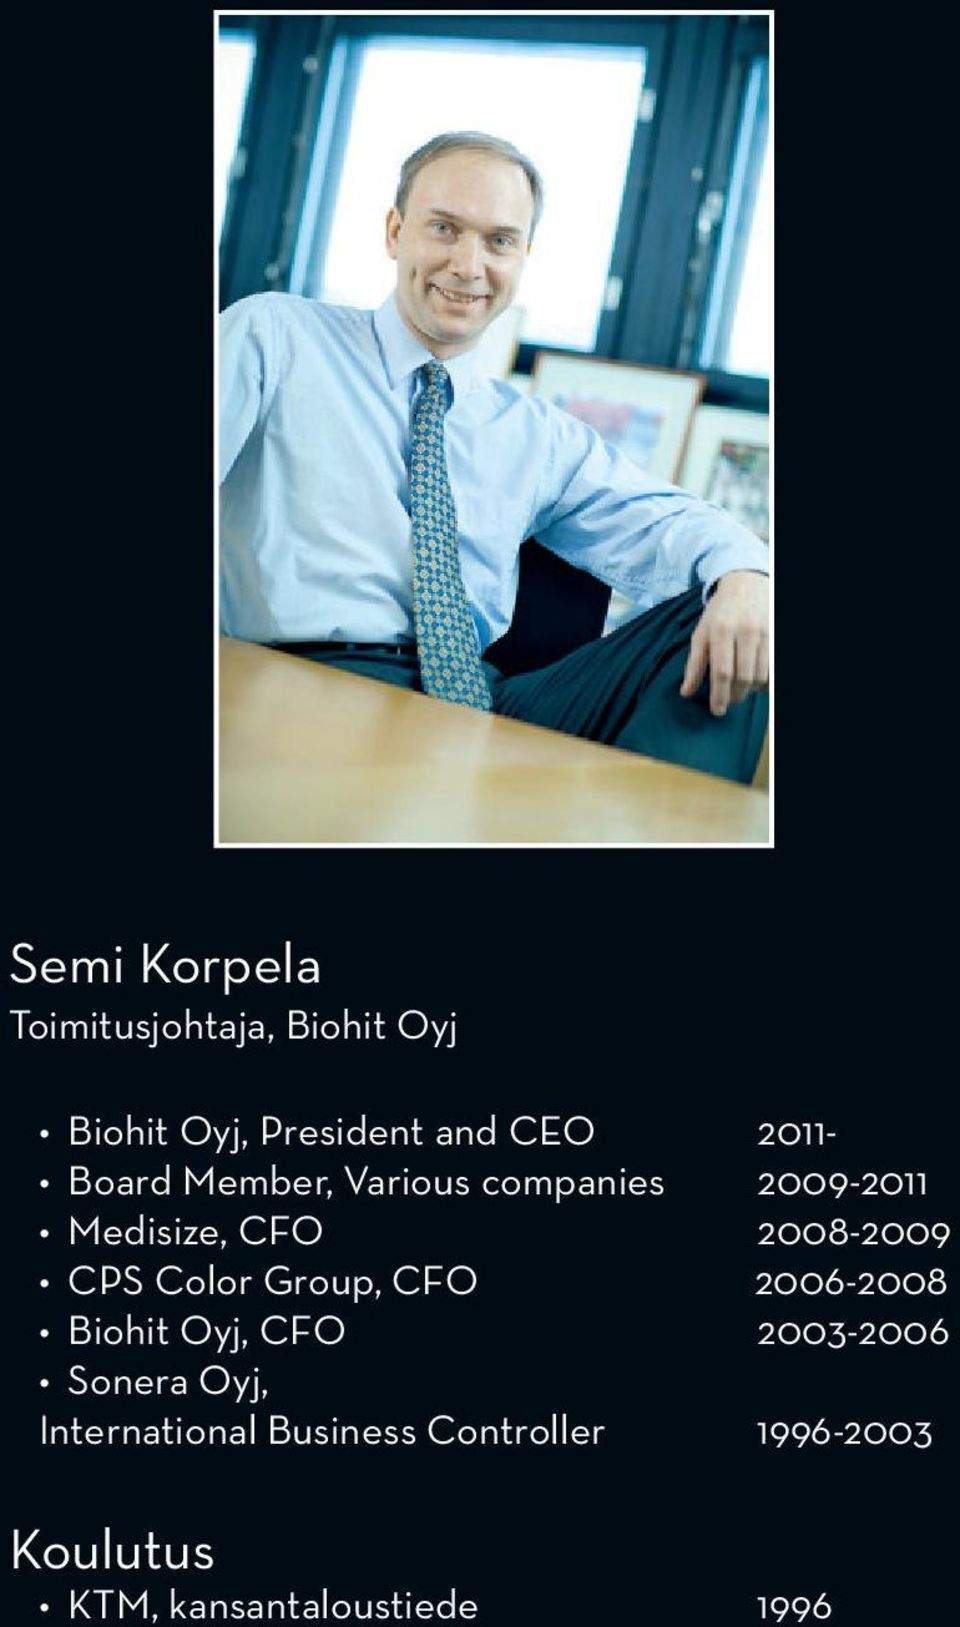 CPS Color Group, CFO 2006-2008 Biohit Oyj, CFO 2003-2006 Sonera Oyj,